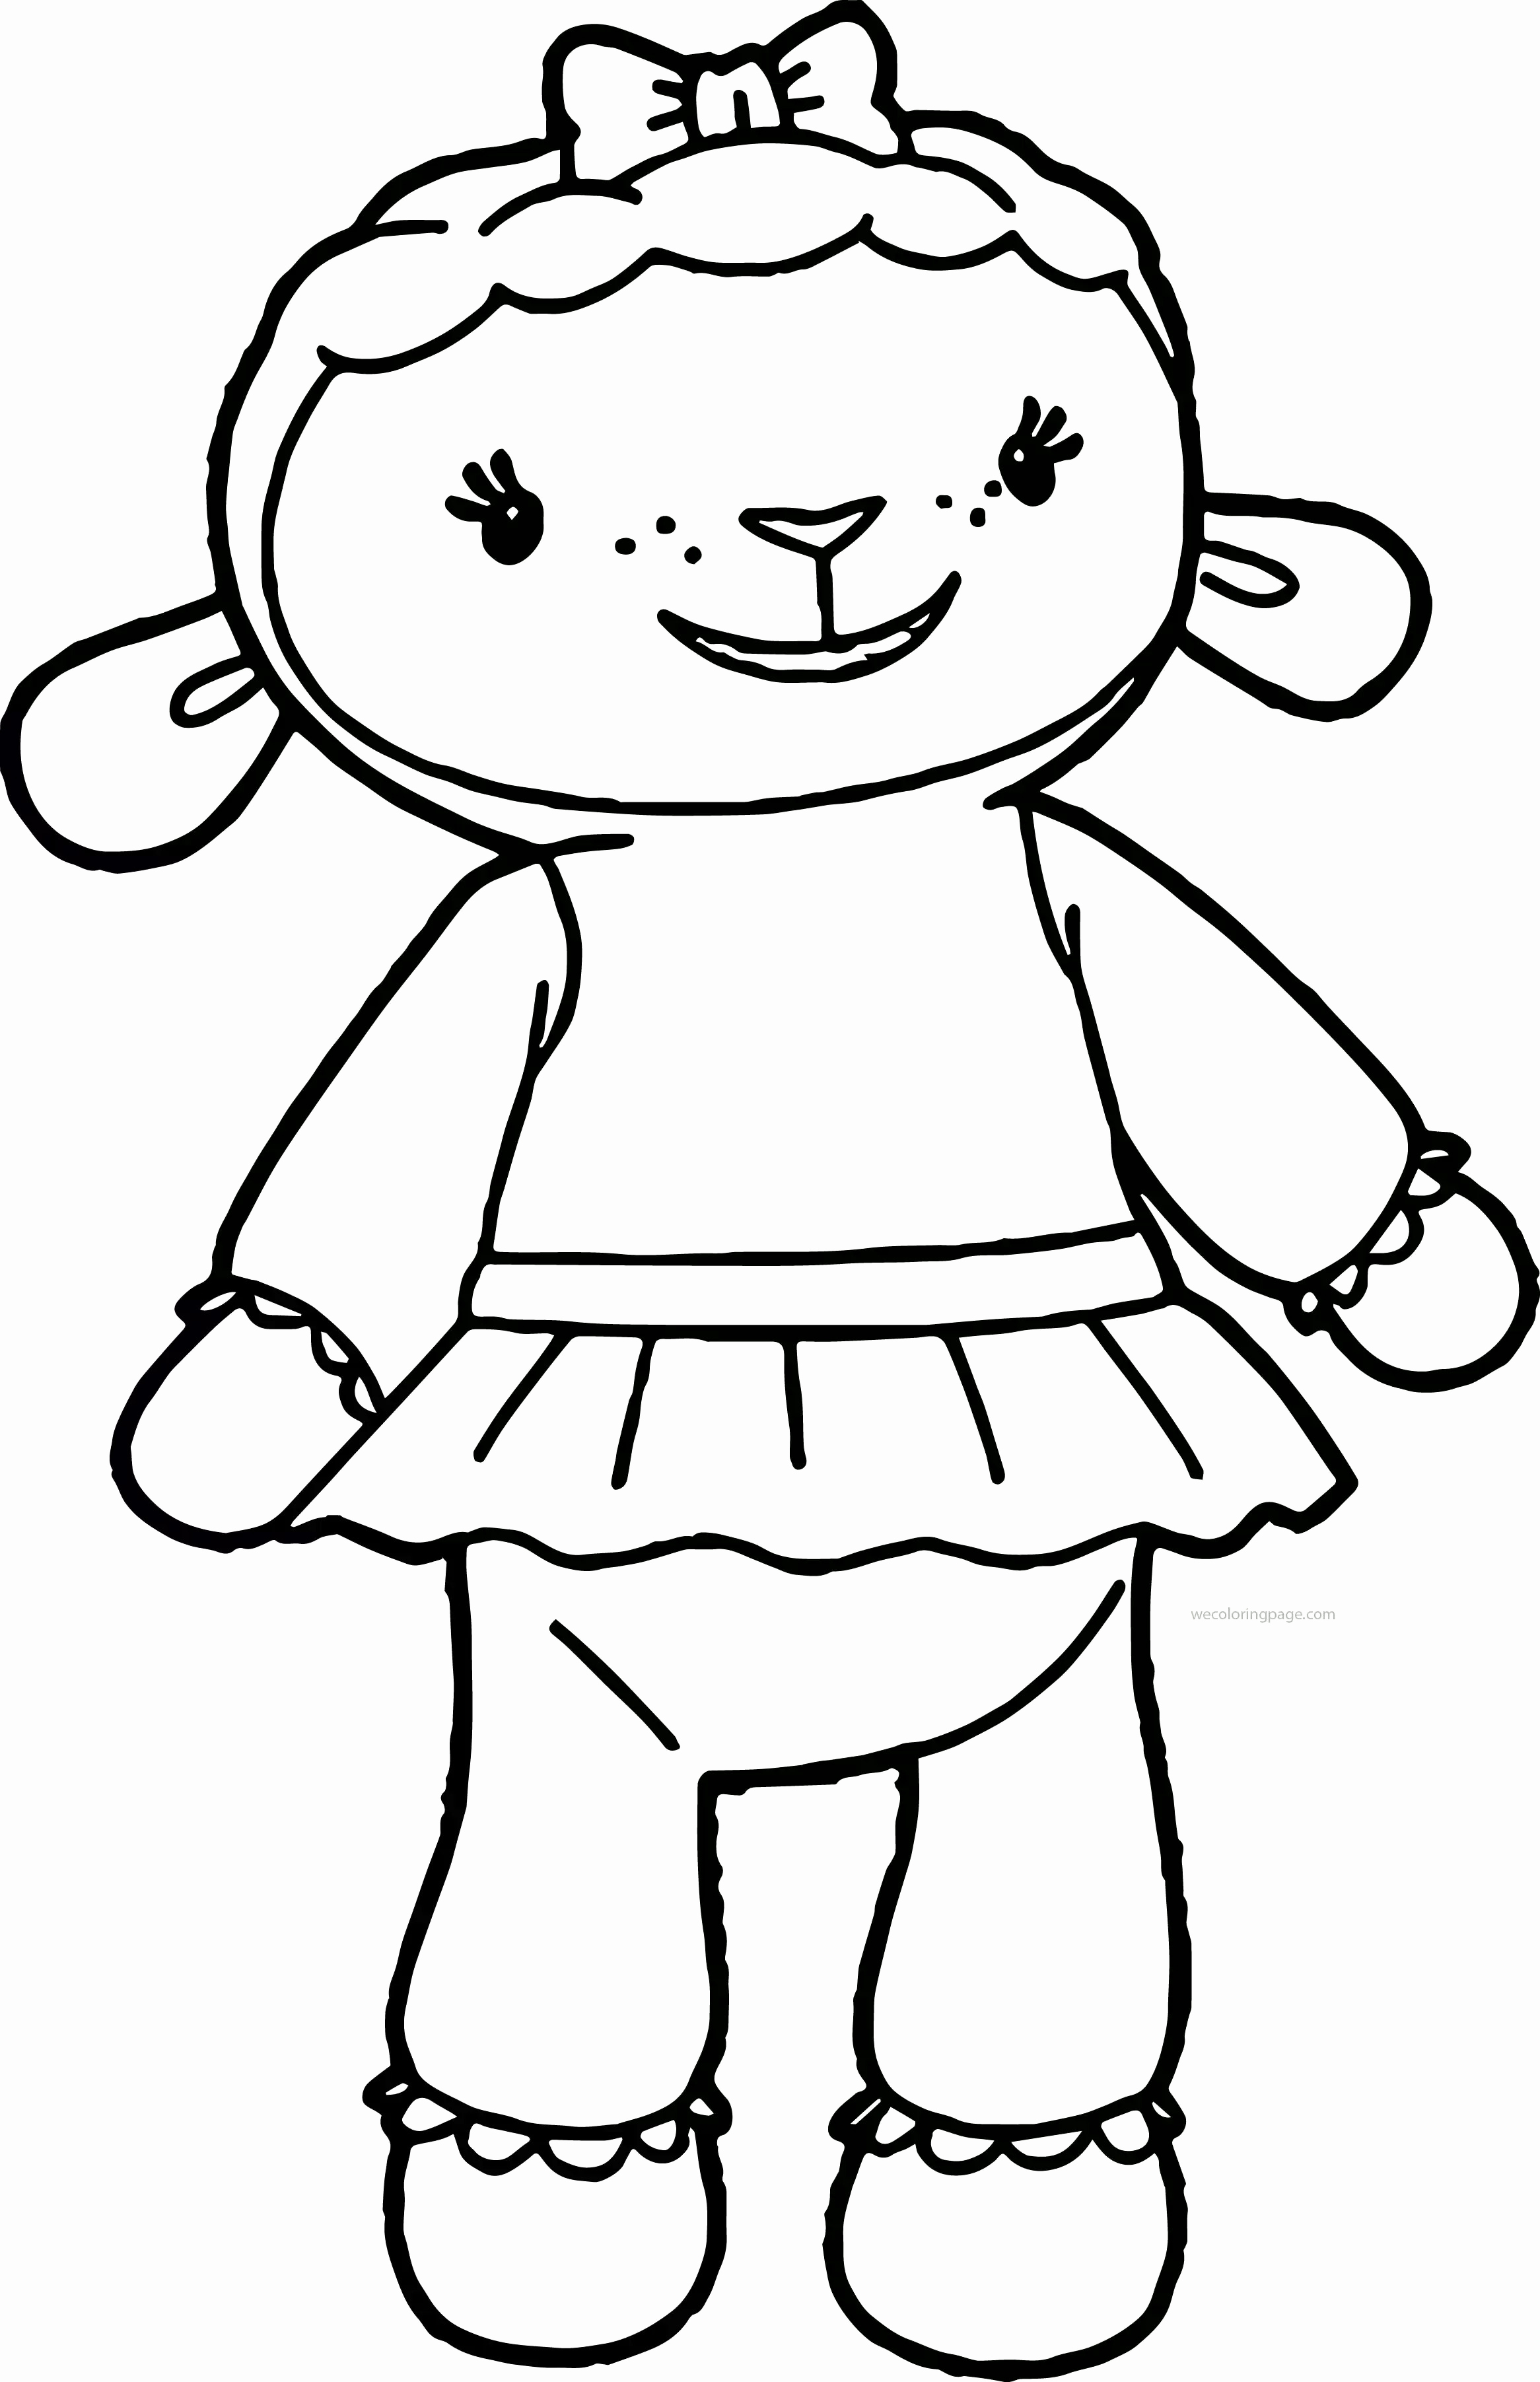 Doc Mcstuffins Lambie Coloring Pages at GetDrawings | Free ...